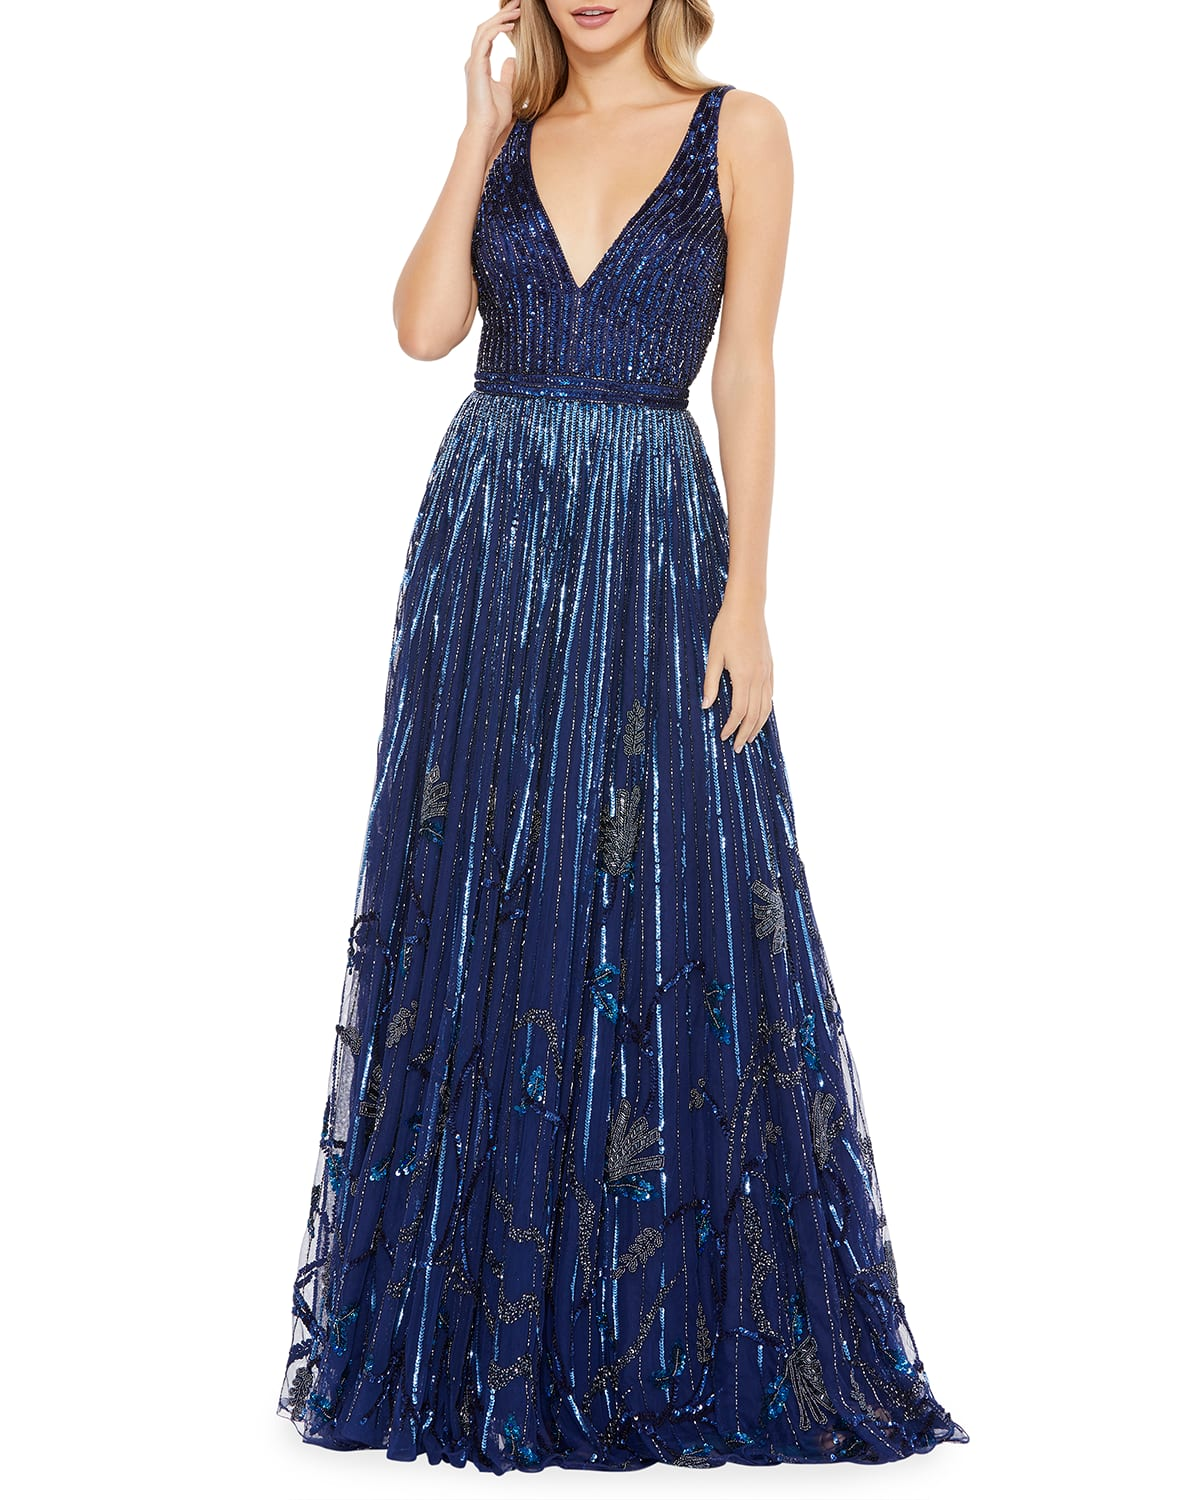 Sequin Floral Beaded Sleeveless A-Line Gown